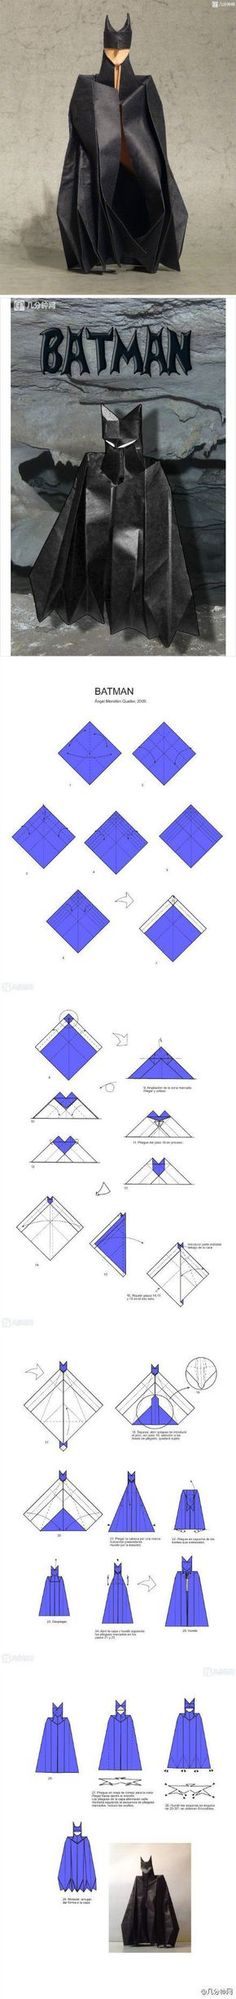 Origami Batman Folding Instructions / Origami Instruction